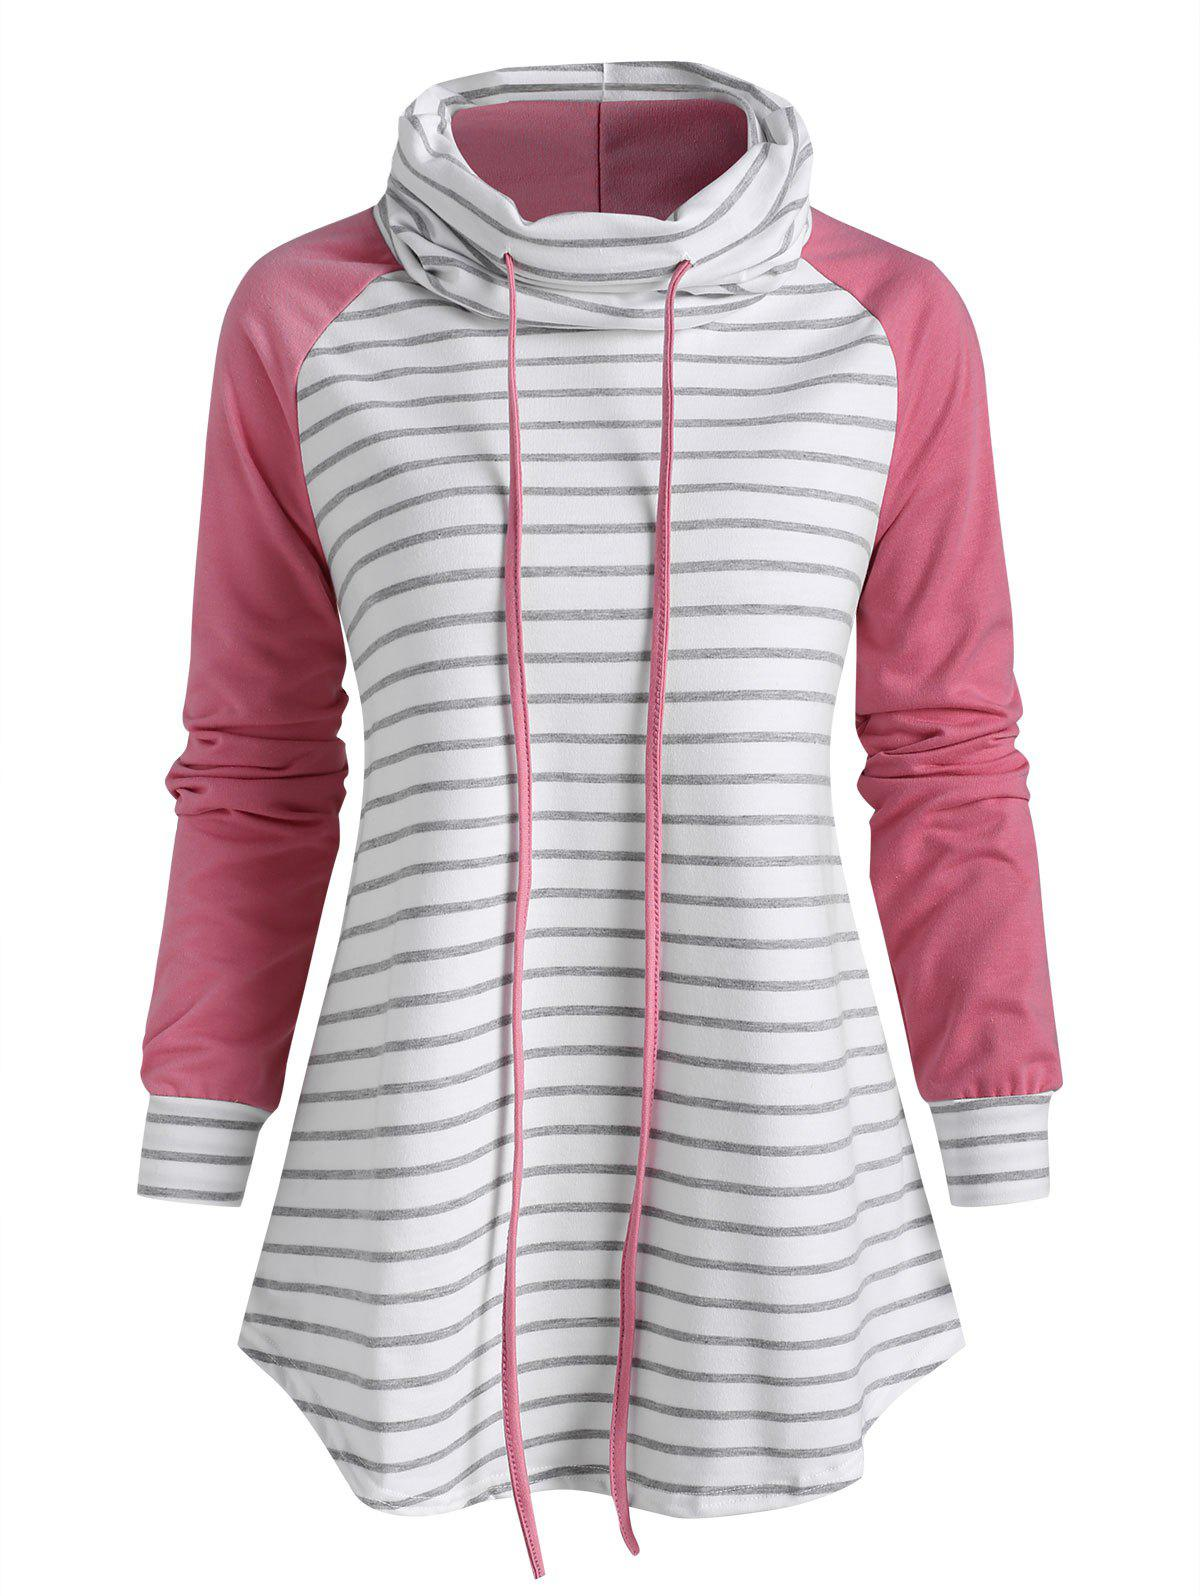 Funnel Neck Striped Raglan Sleeve Sweatshirt - LIGHT PINK 2XL